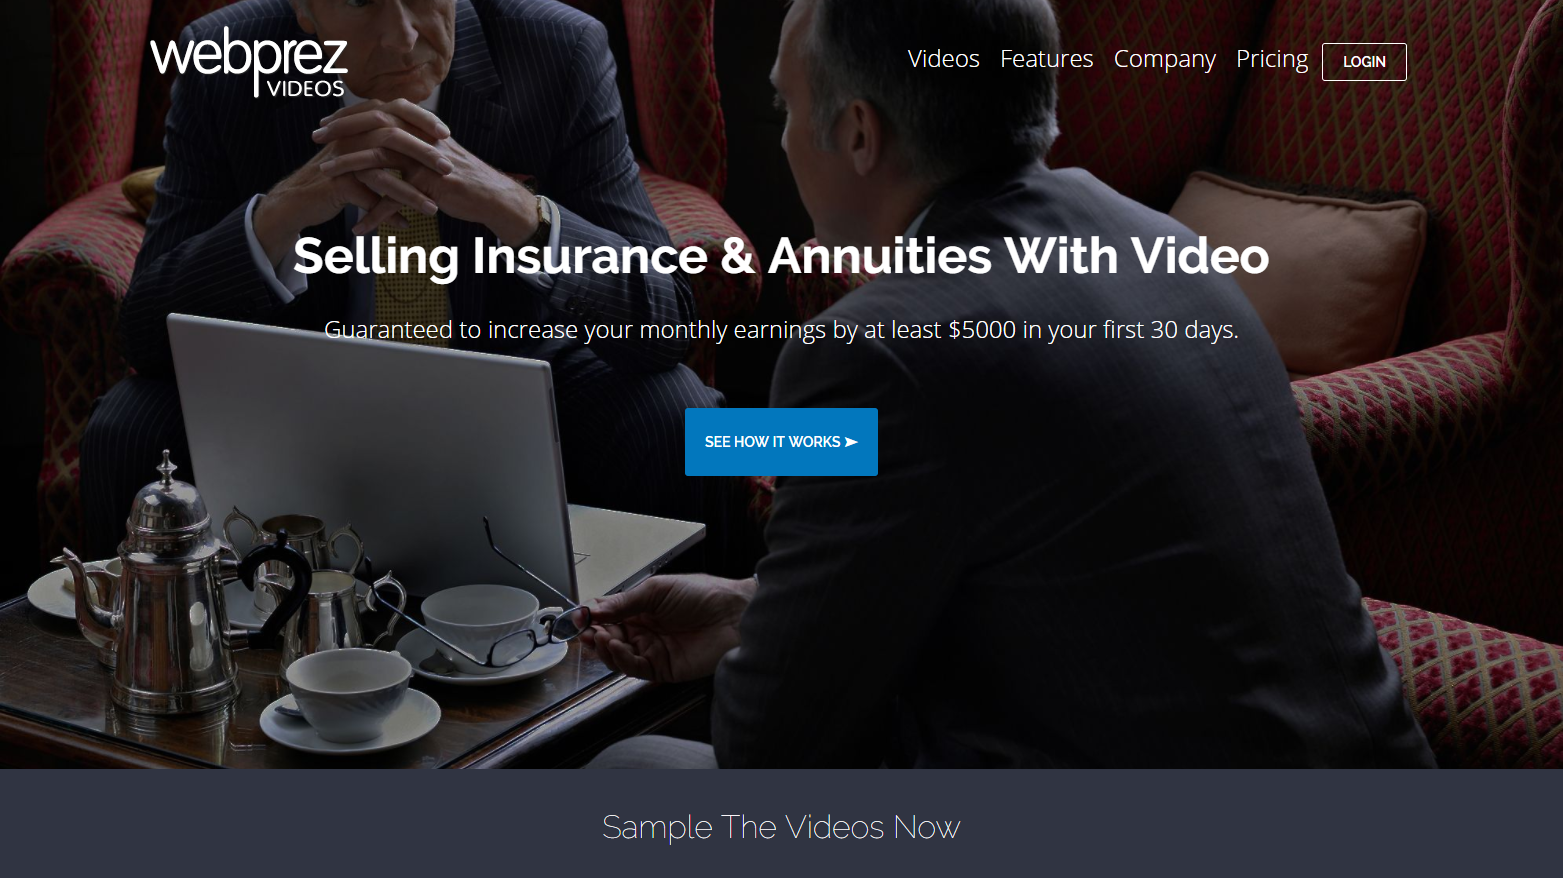 Selling Insurance and Annuities With Video